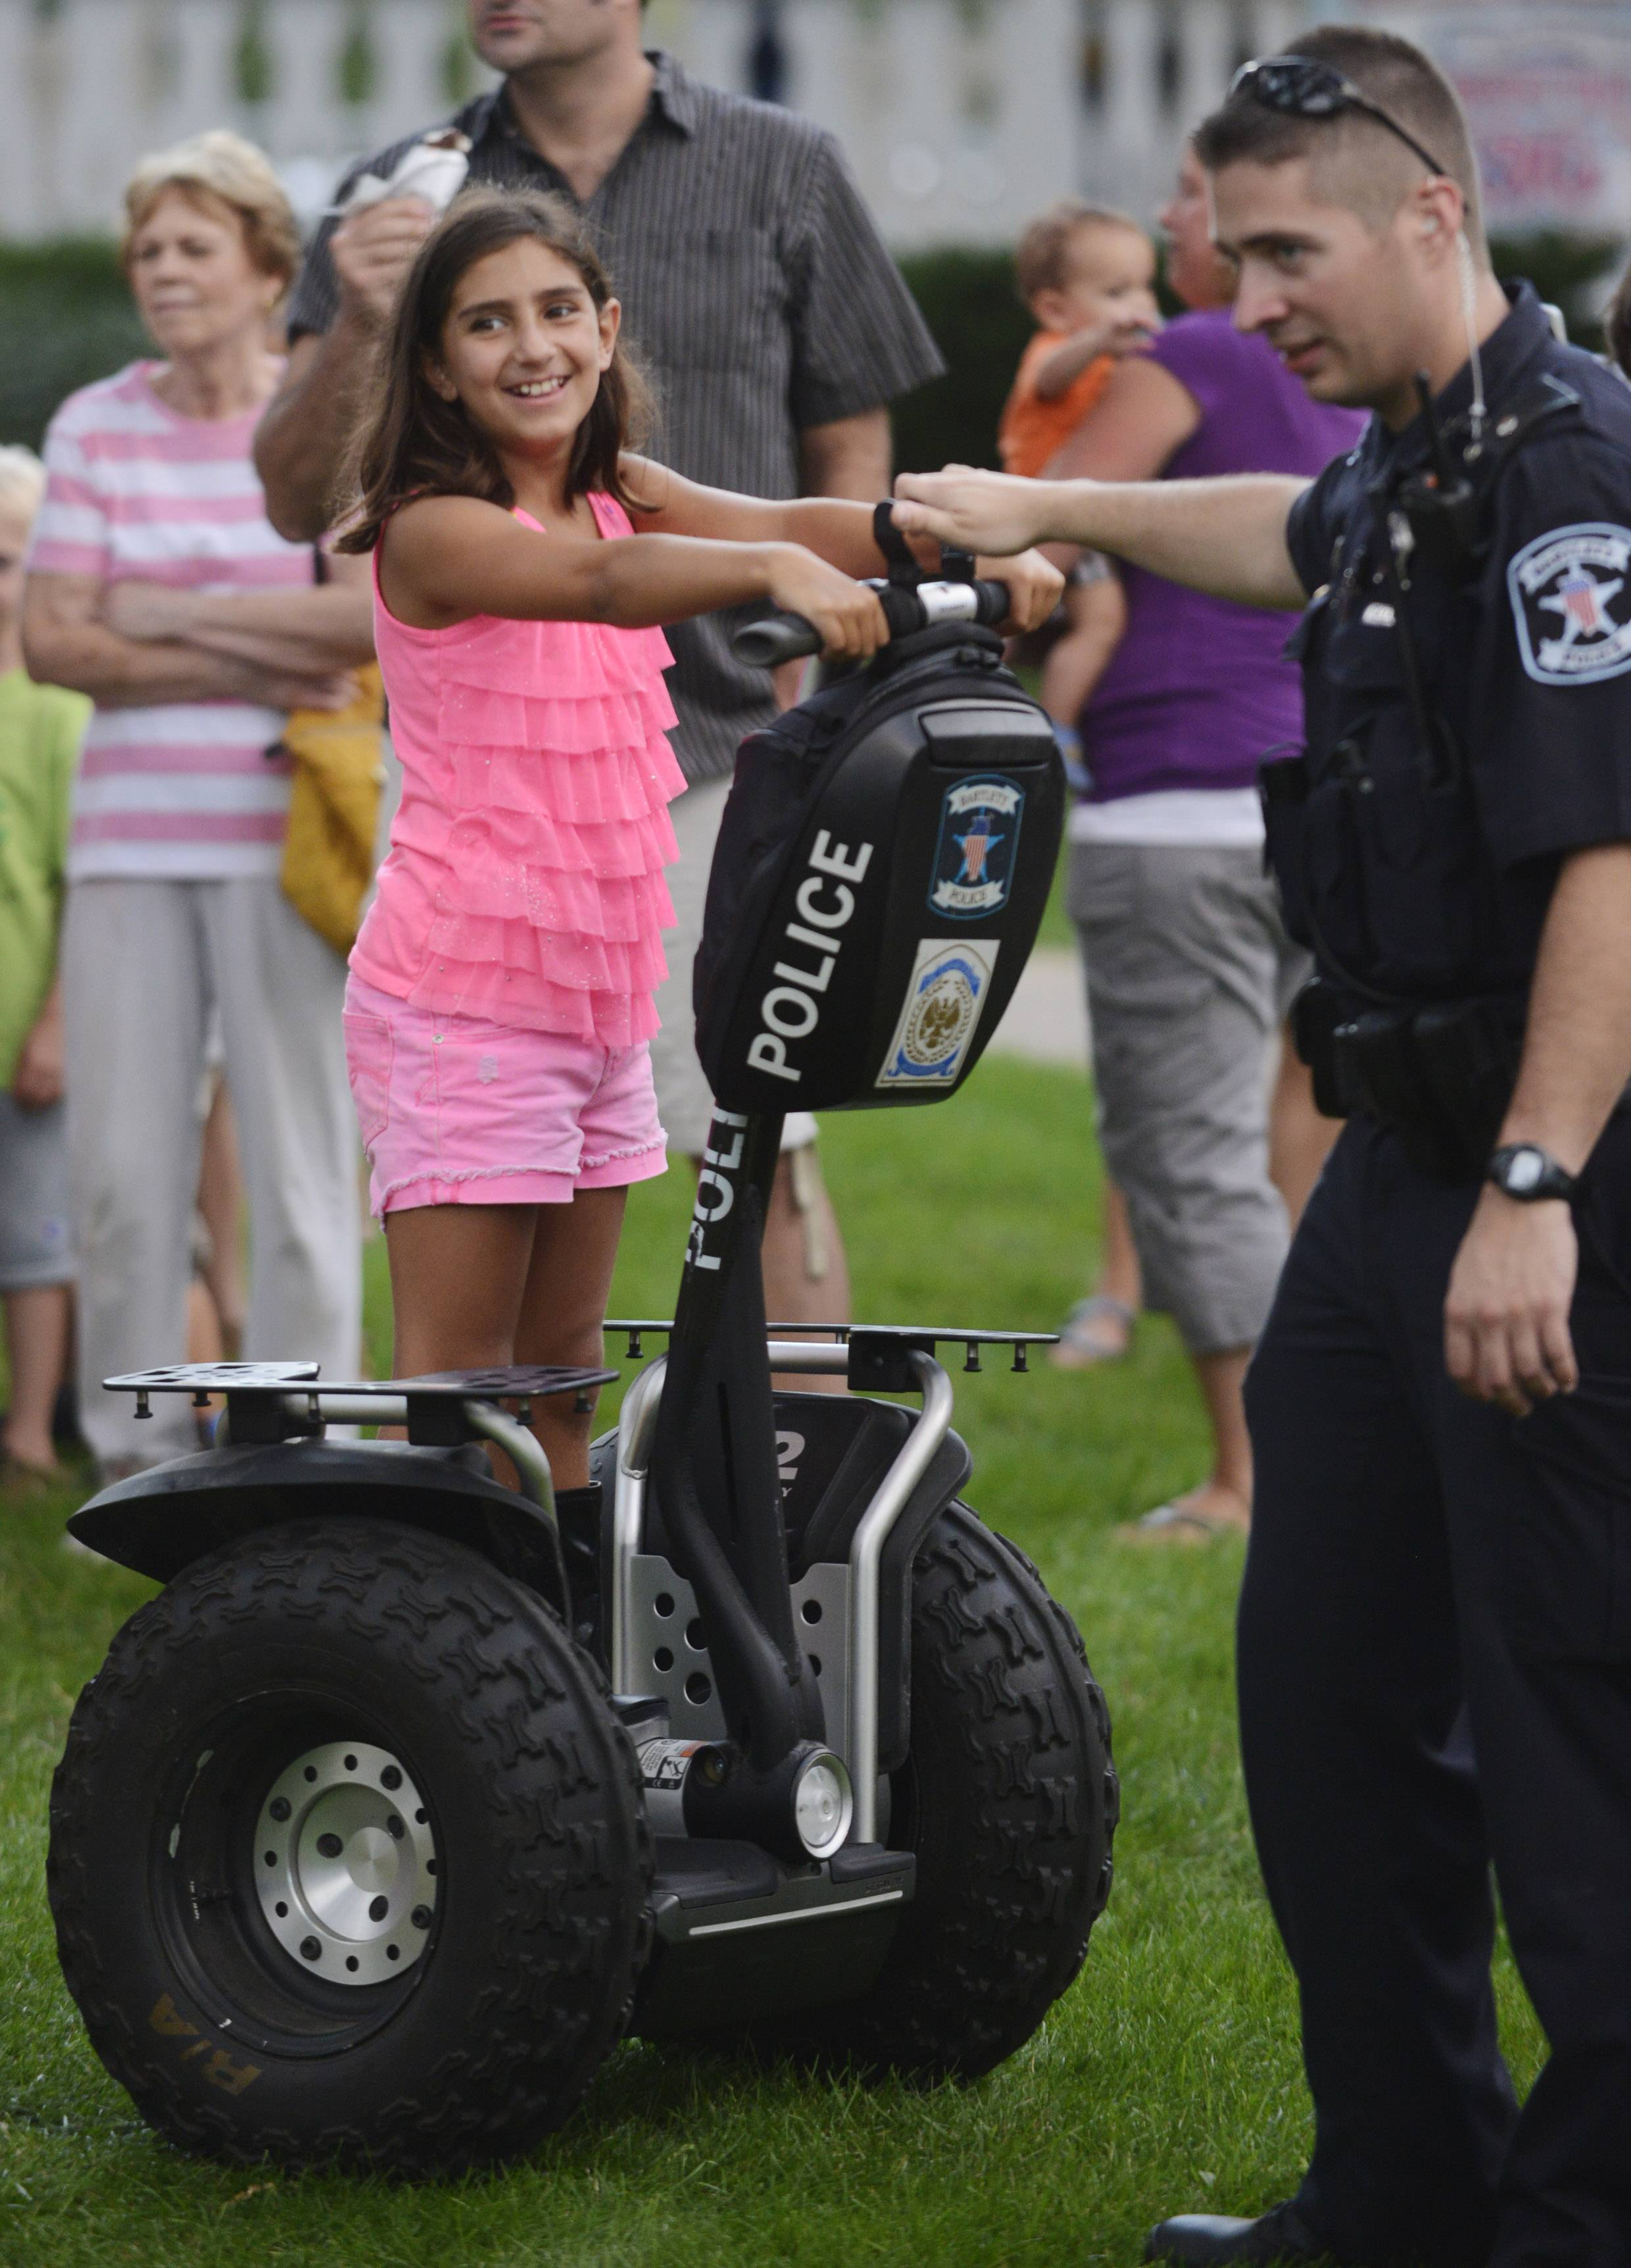 Organizers of National Night Out events, including the one scheduled Tuesday at Benedictine University in Lisle, say they allow residents and first-responders to interact in a positive setting.